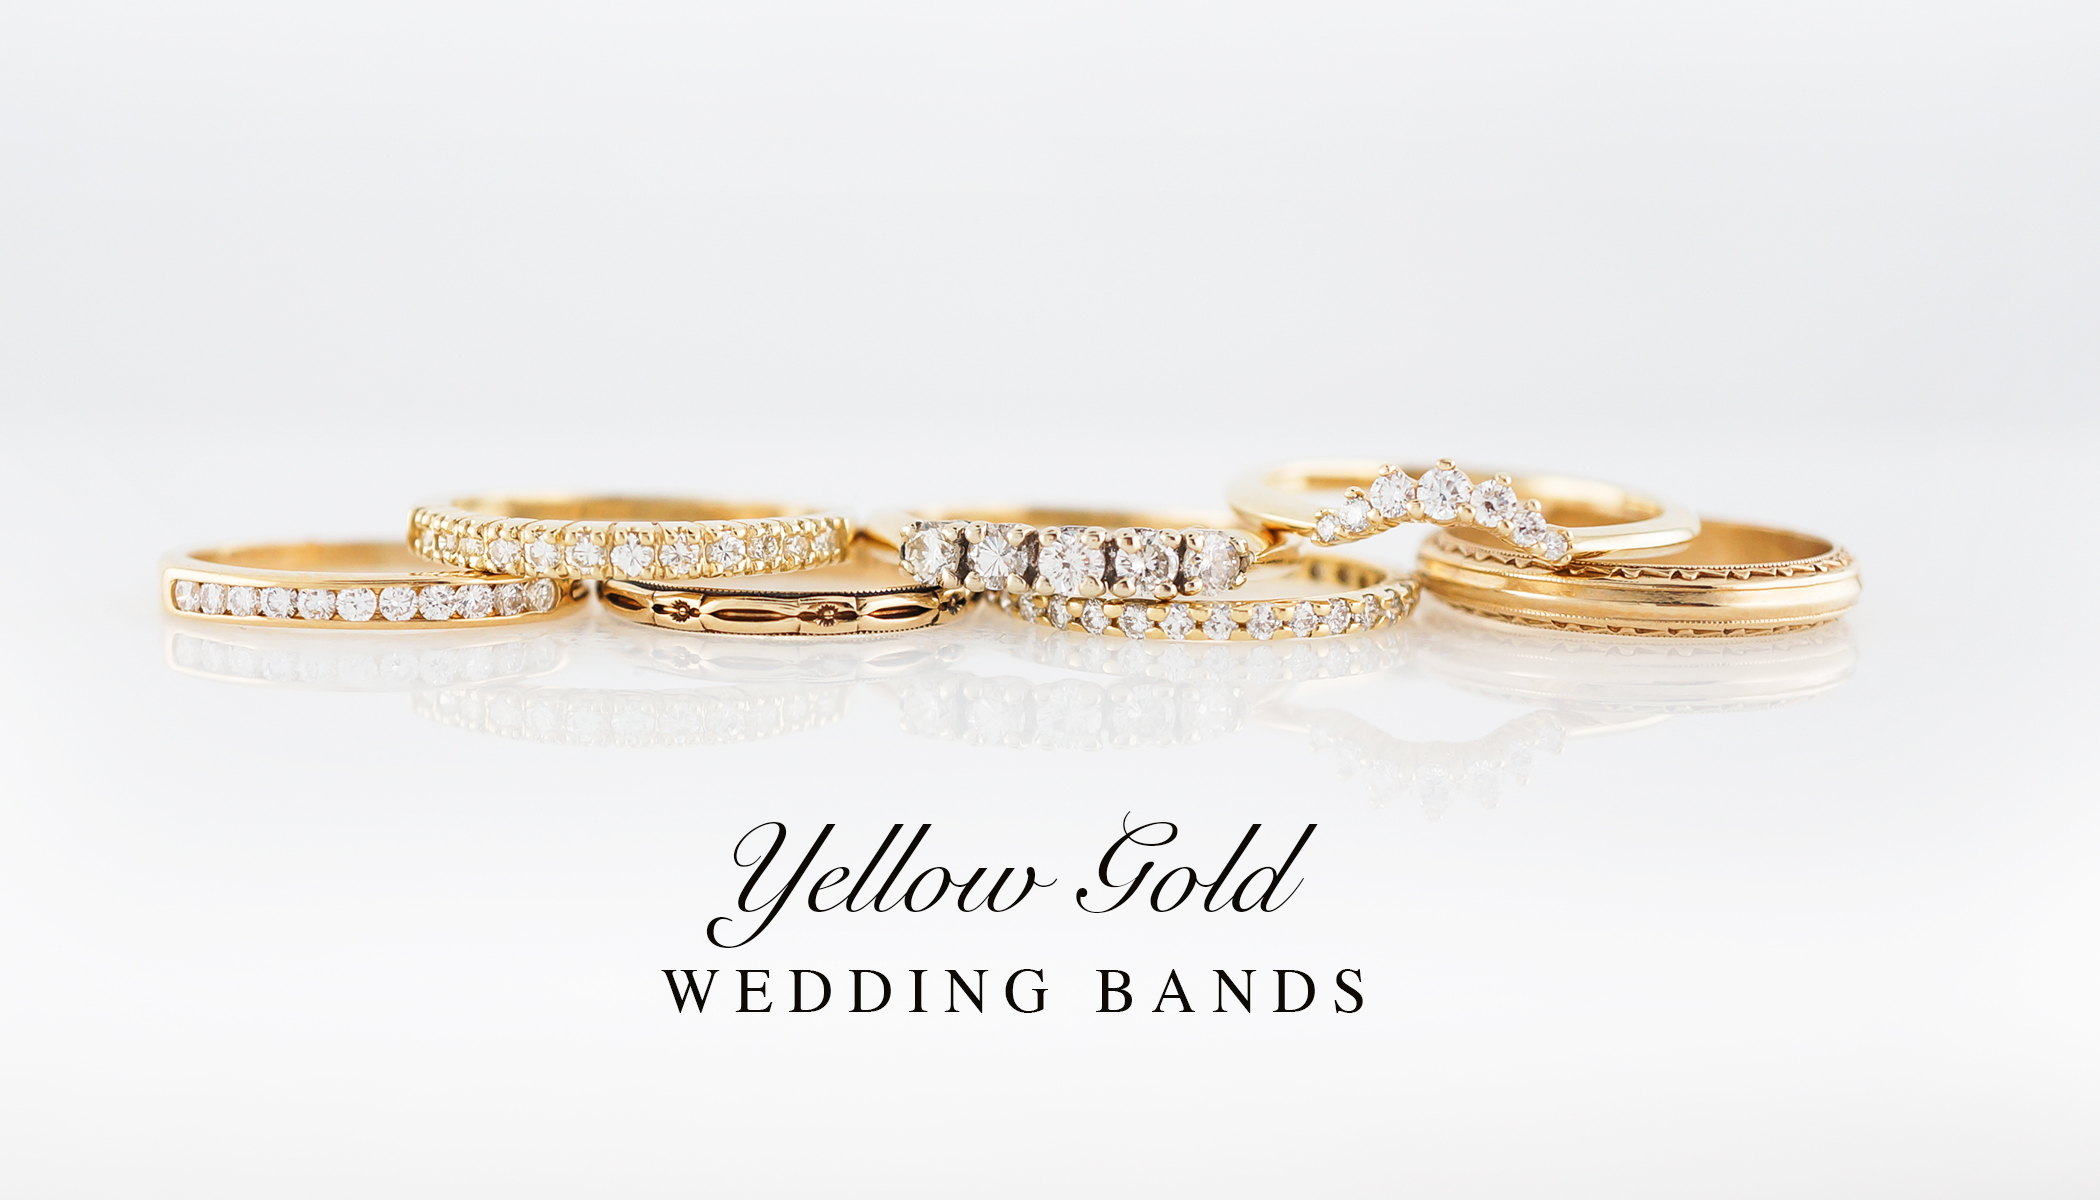 YellowGoldWeddingBands_DiamondWeddingBand_EngravedWeddingBand_FiligreeJewelers_Minneapolis_Northloop